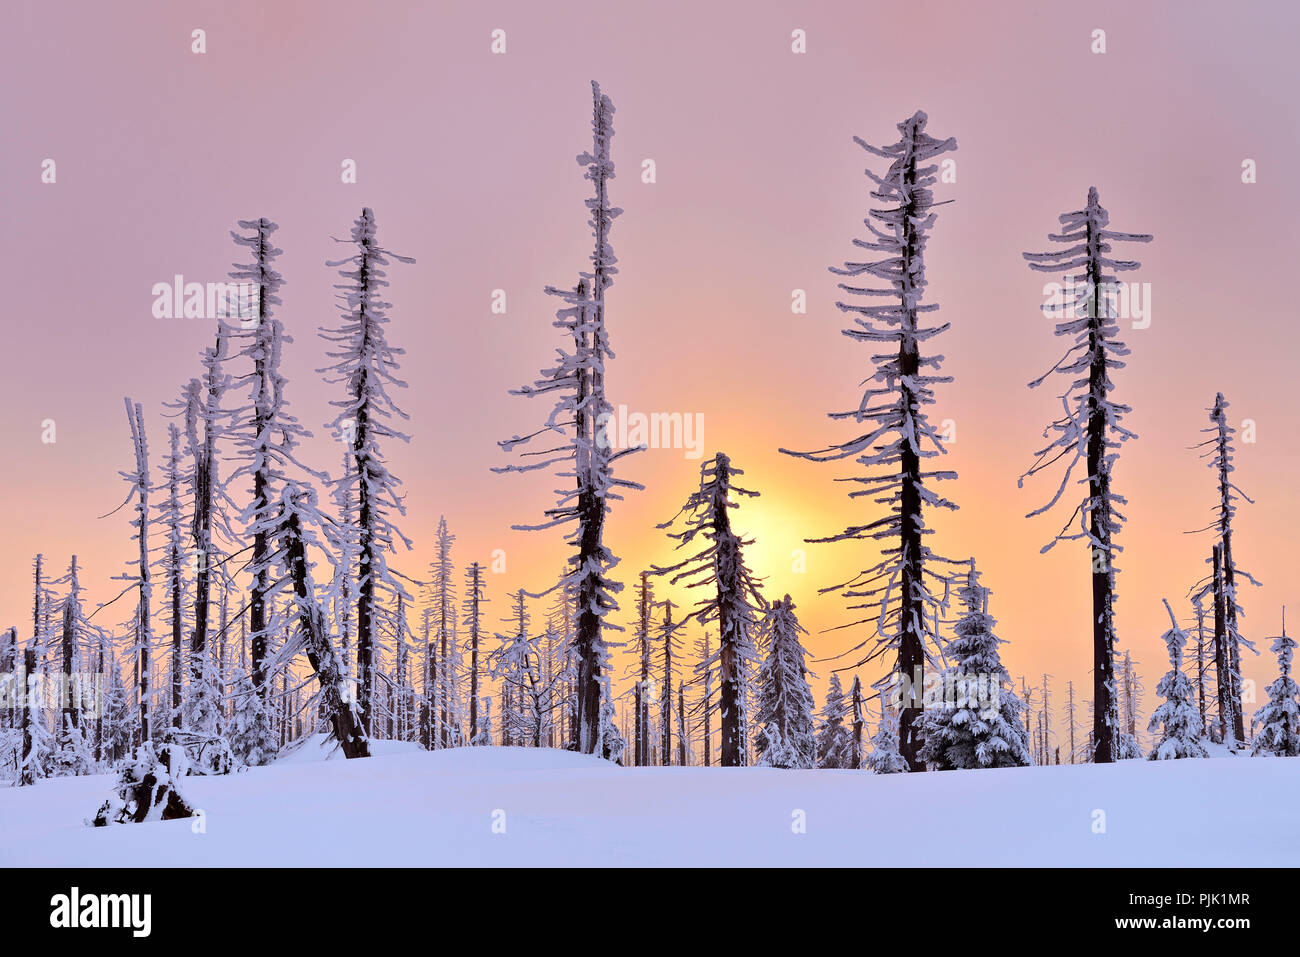 Sunset on the mountain Great Rachel in winter, spruce covered with snow and dead by bark beetle infestation, Bavarian Forest nature park, Bavaria, Germany - Stock Image